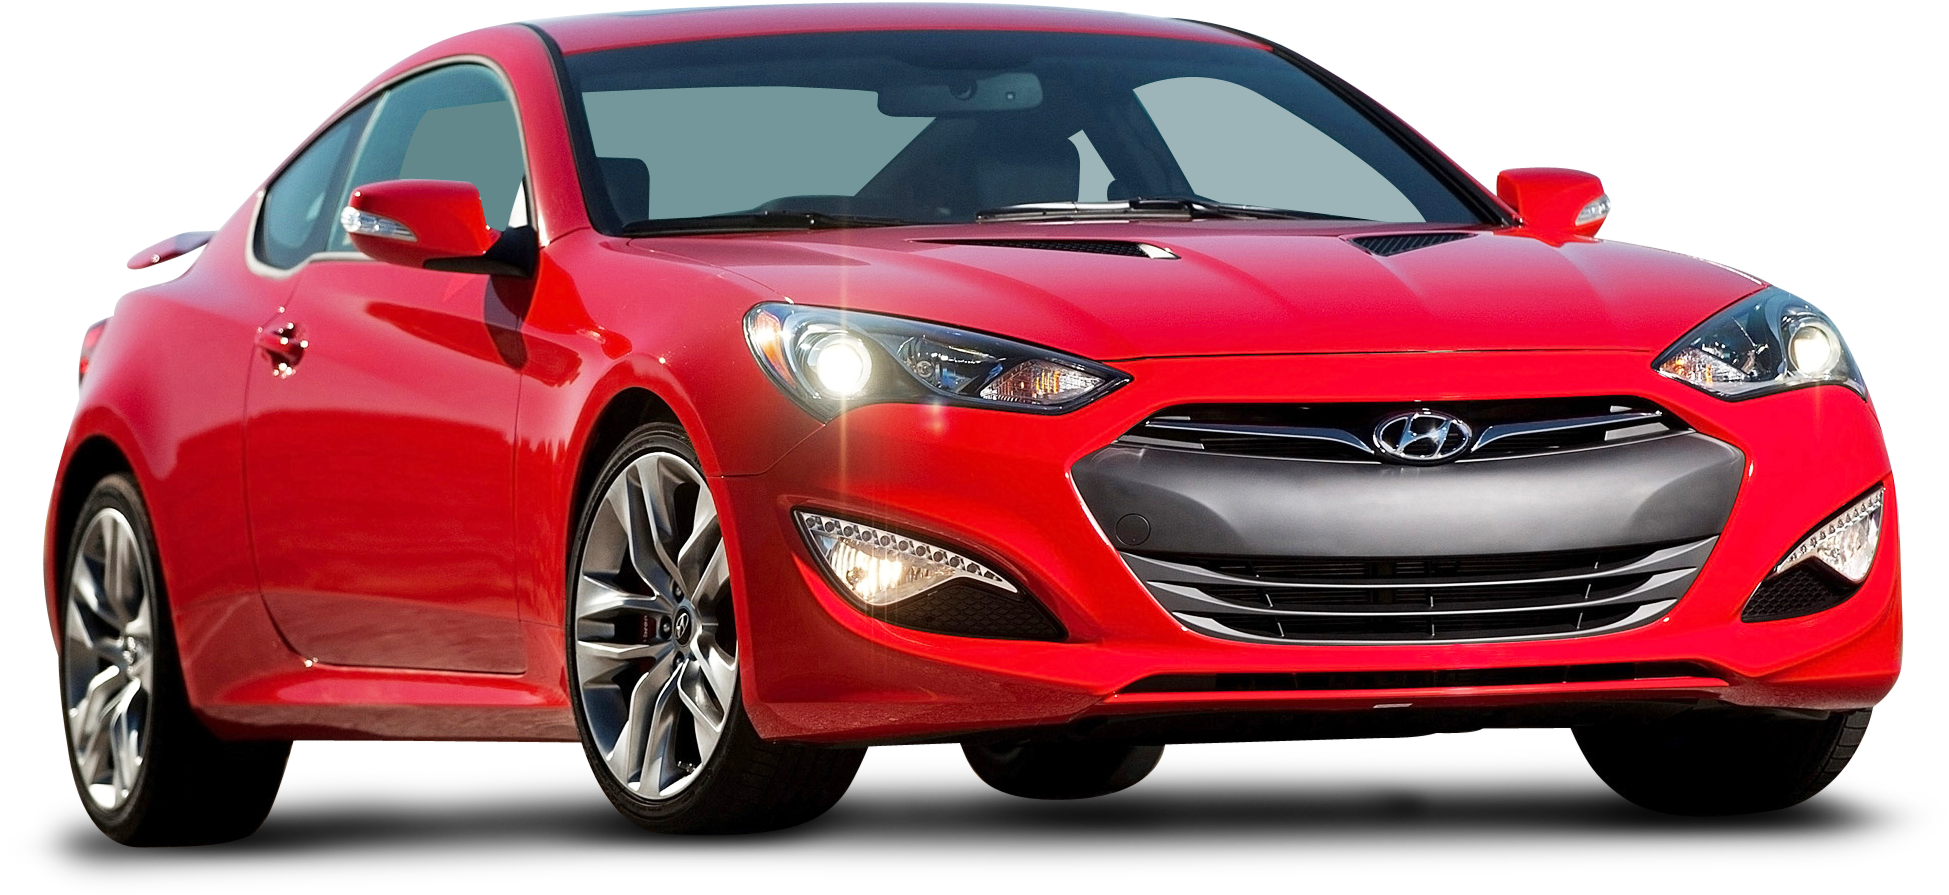 90 The Best 2020 Hyundai Genesis Coupe Picture